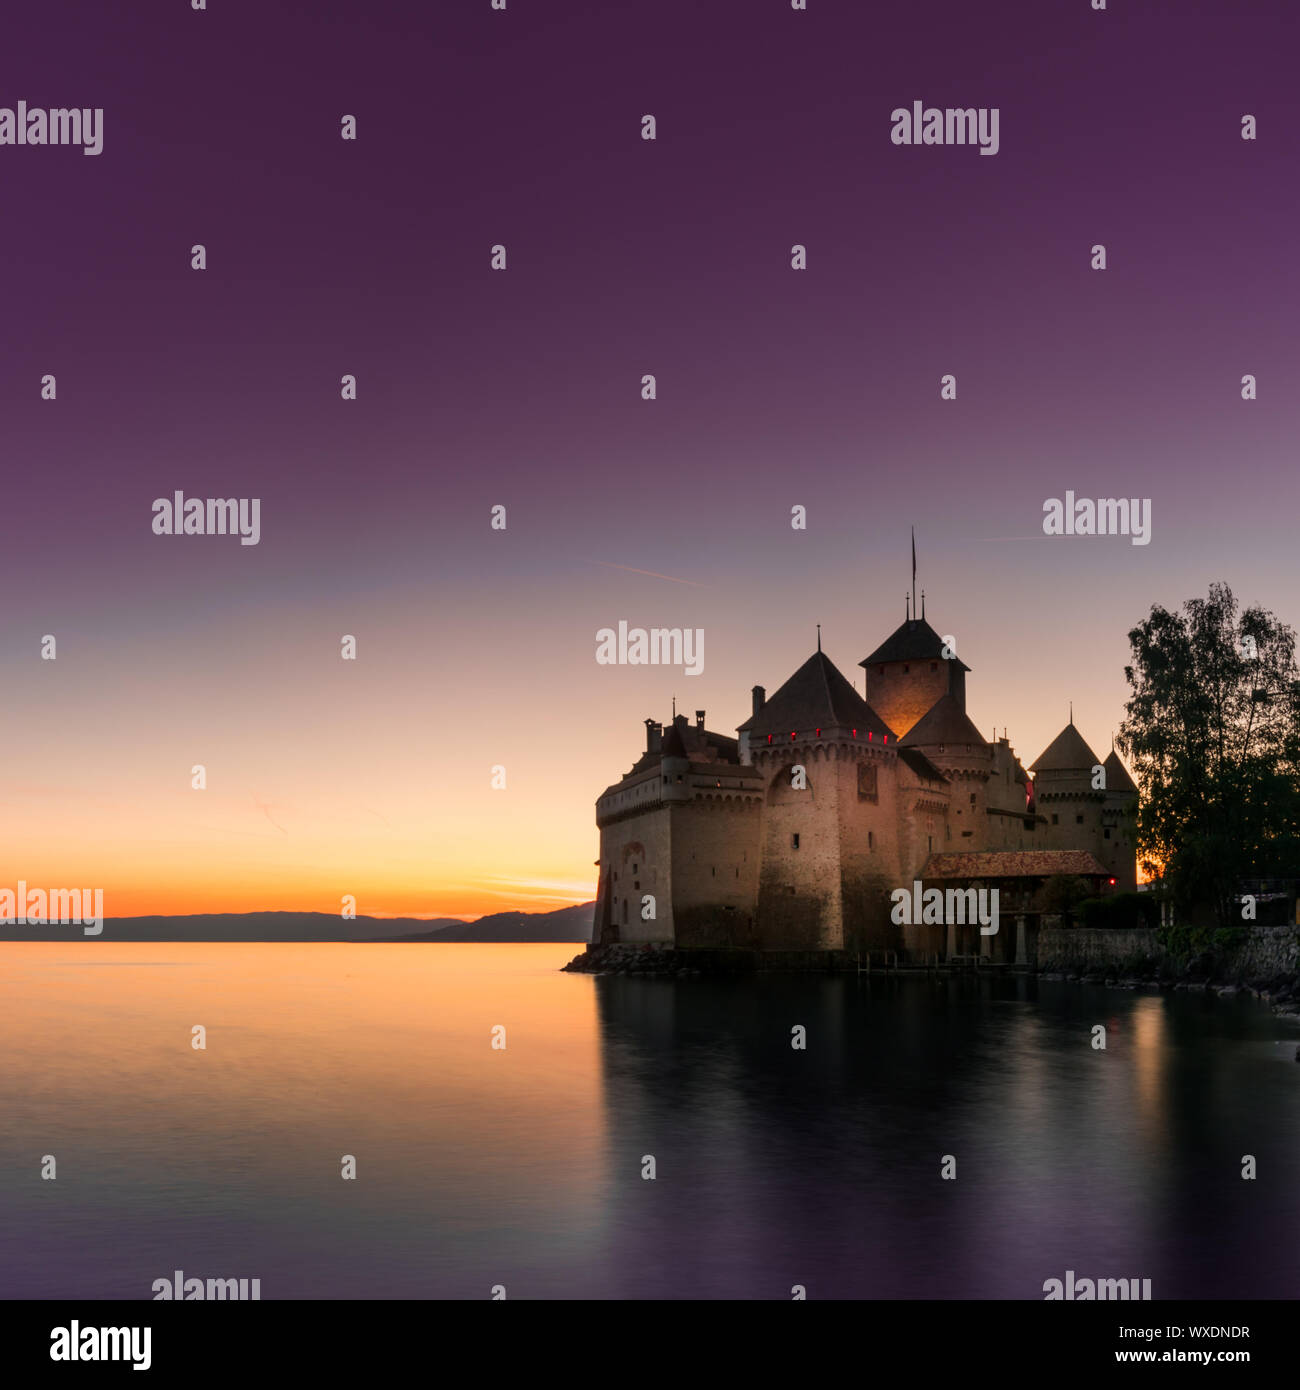 Montreux, VD / Switzerland - 31 May 2019: the historic Chillon Castle on the shores of Lake Geneva a Stock Photo